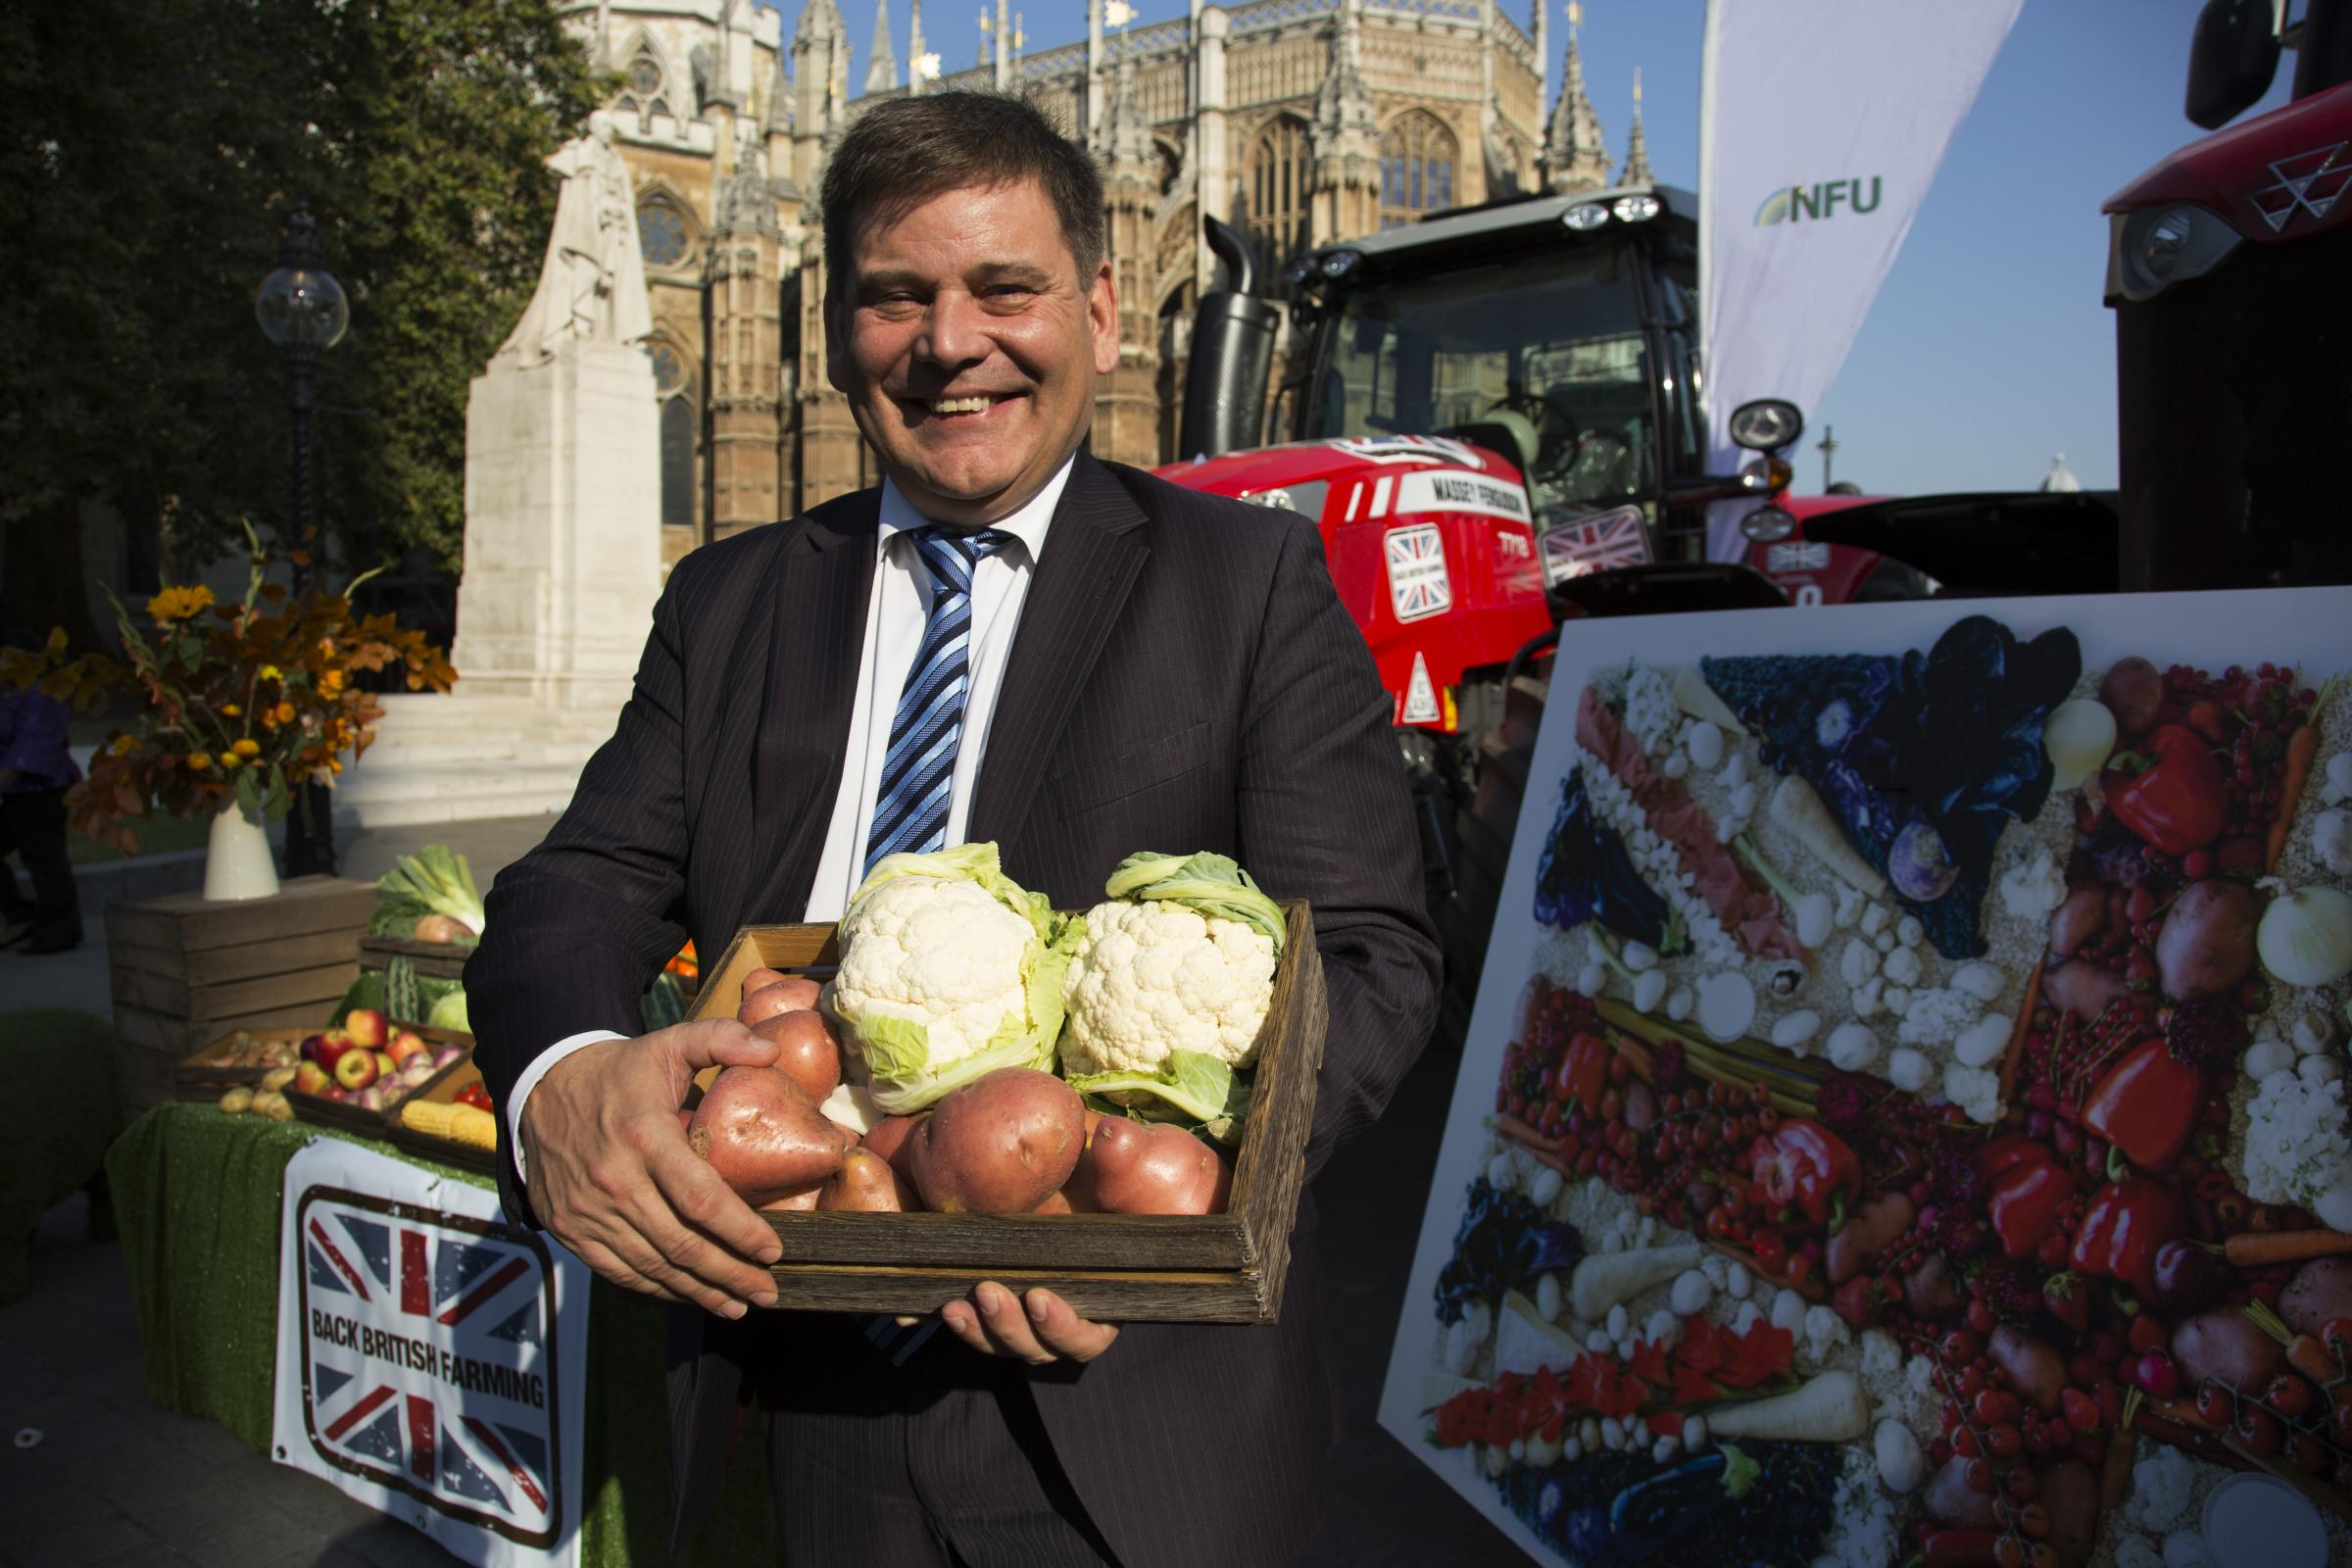 Andrew Bridgen clearly doesn't know his onions when it comes to Brexit